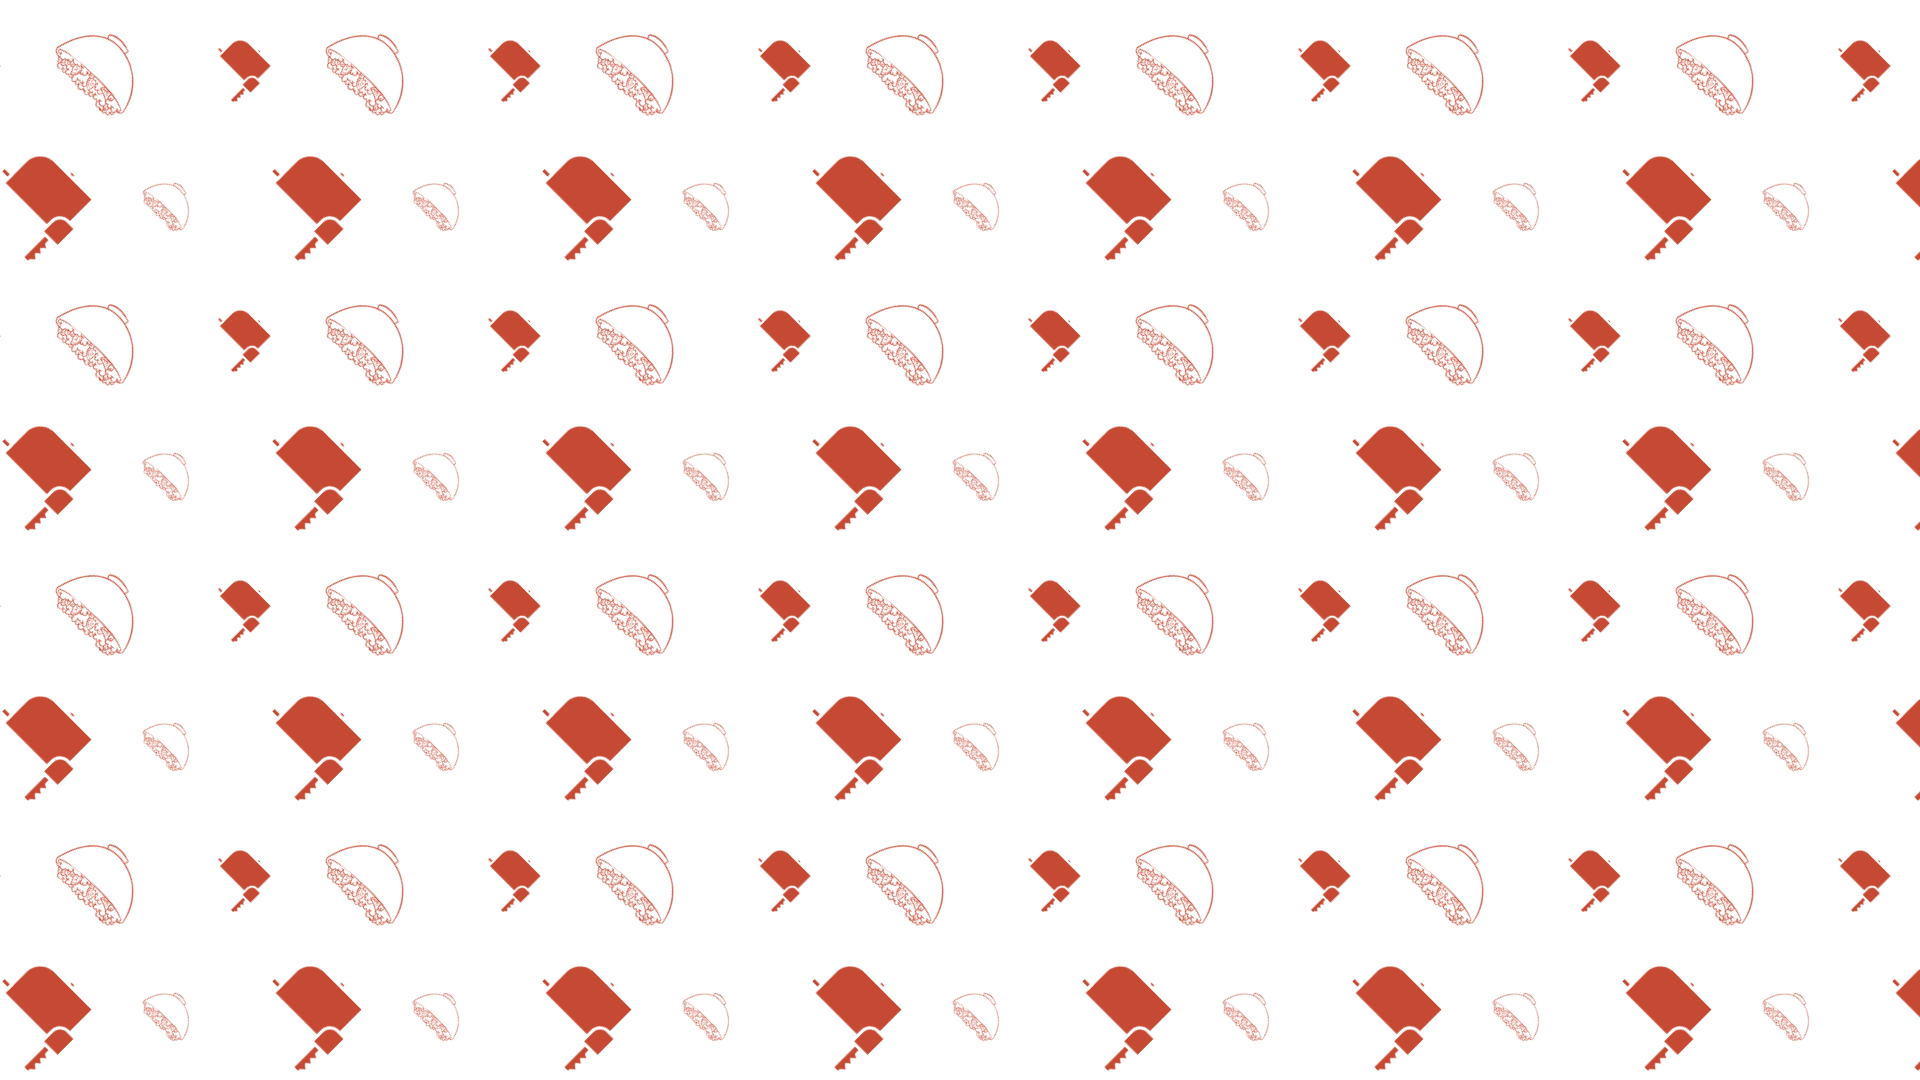 Nuts transparent outline. Hd pattern design iconpattern